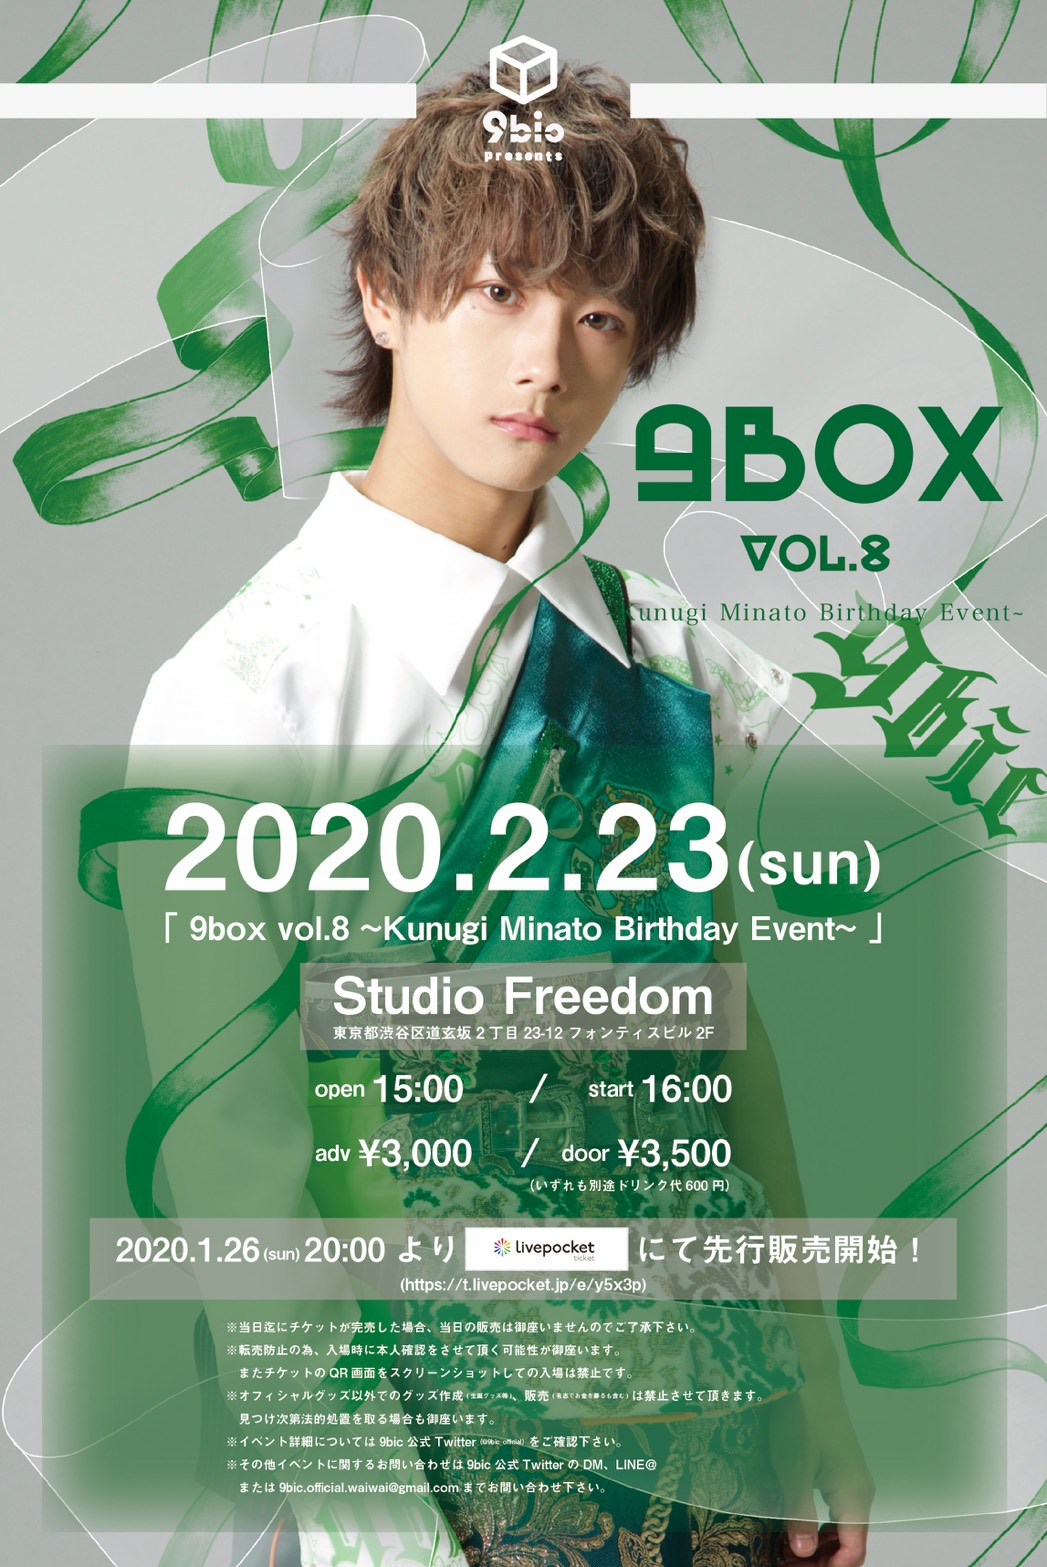 9box vol.8 ~Kunugi Minato Birthday Event~